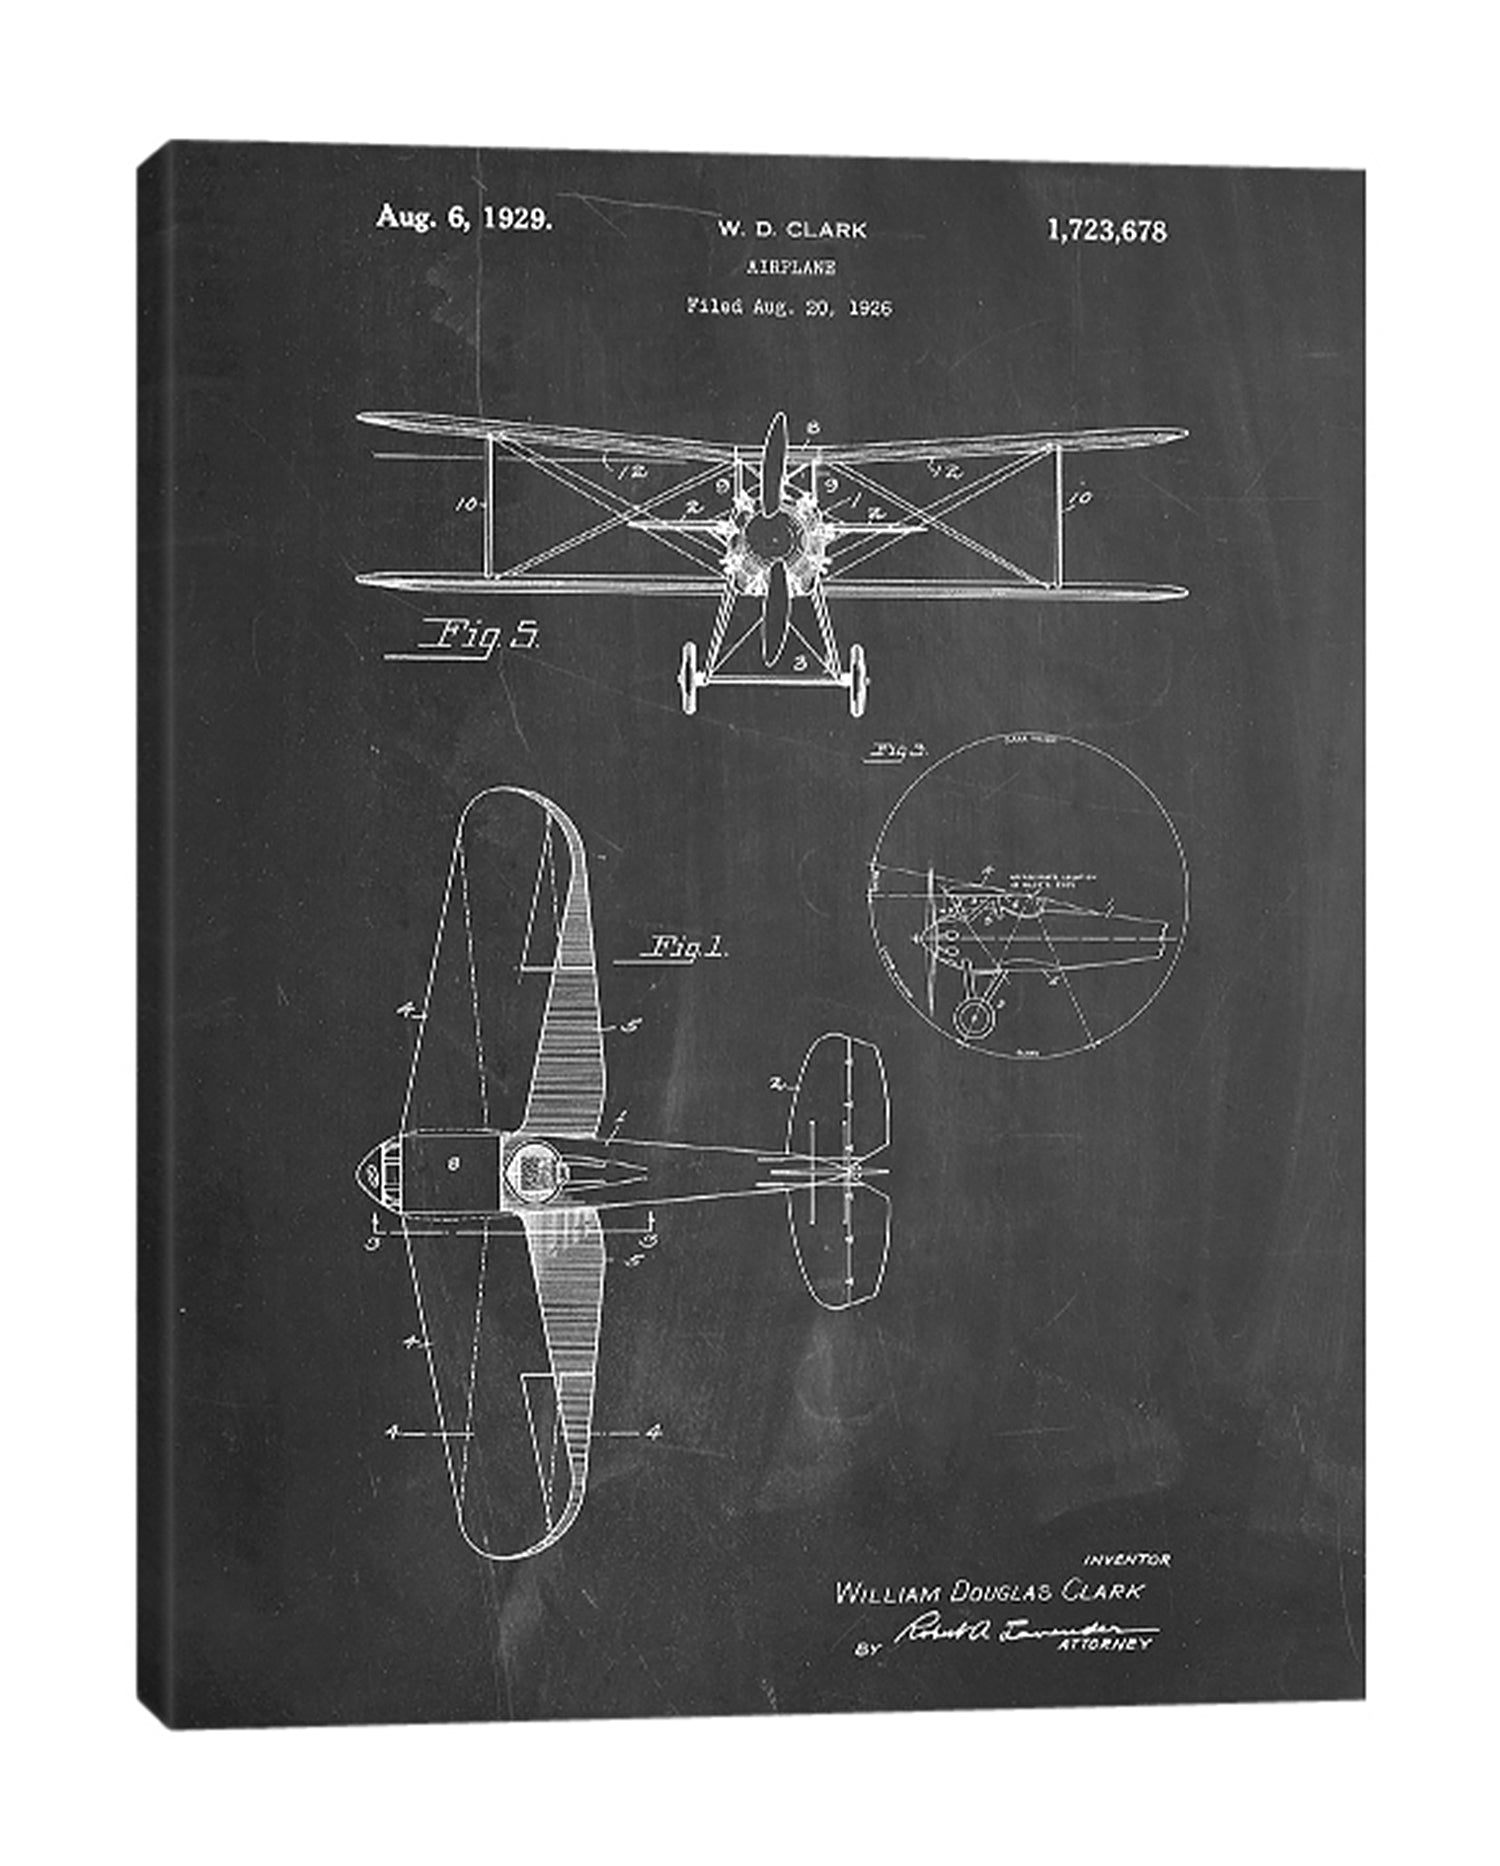 Cole-Borders,Modern & Contemporary,Transportation,wd clark plane,plane,airplanes,blueprint,patented,words and phrases,drawing,sketches,Red,Mint Green,Blue,Black